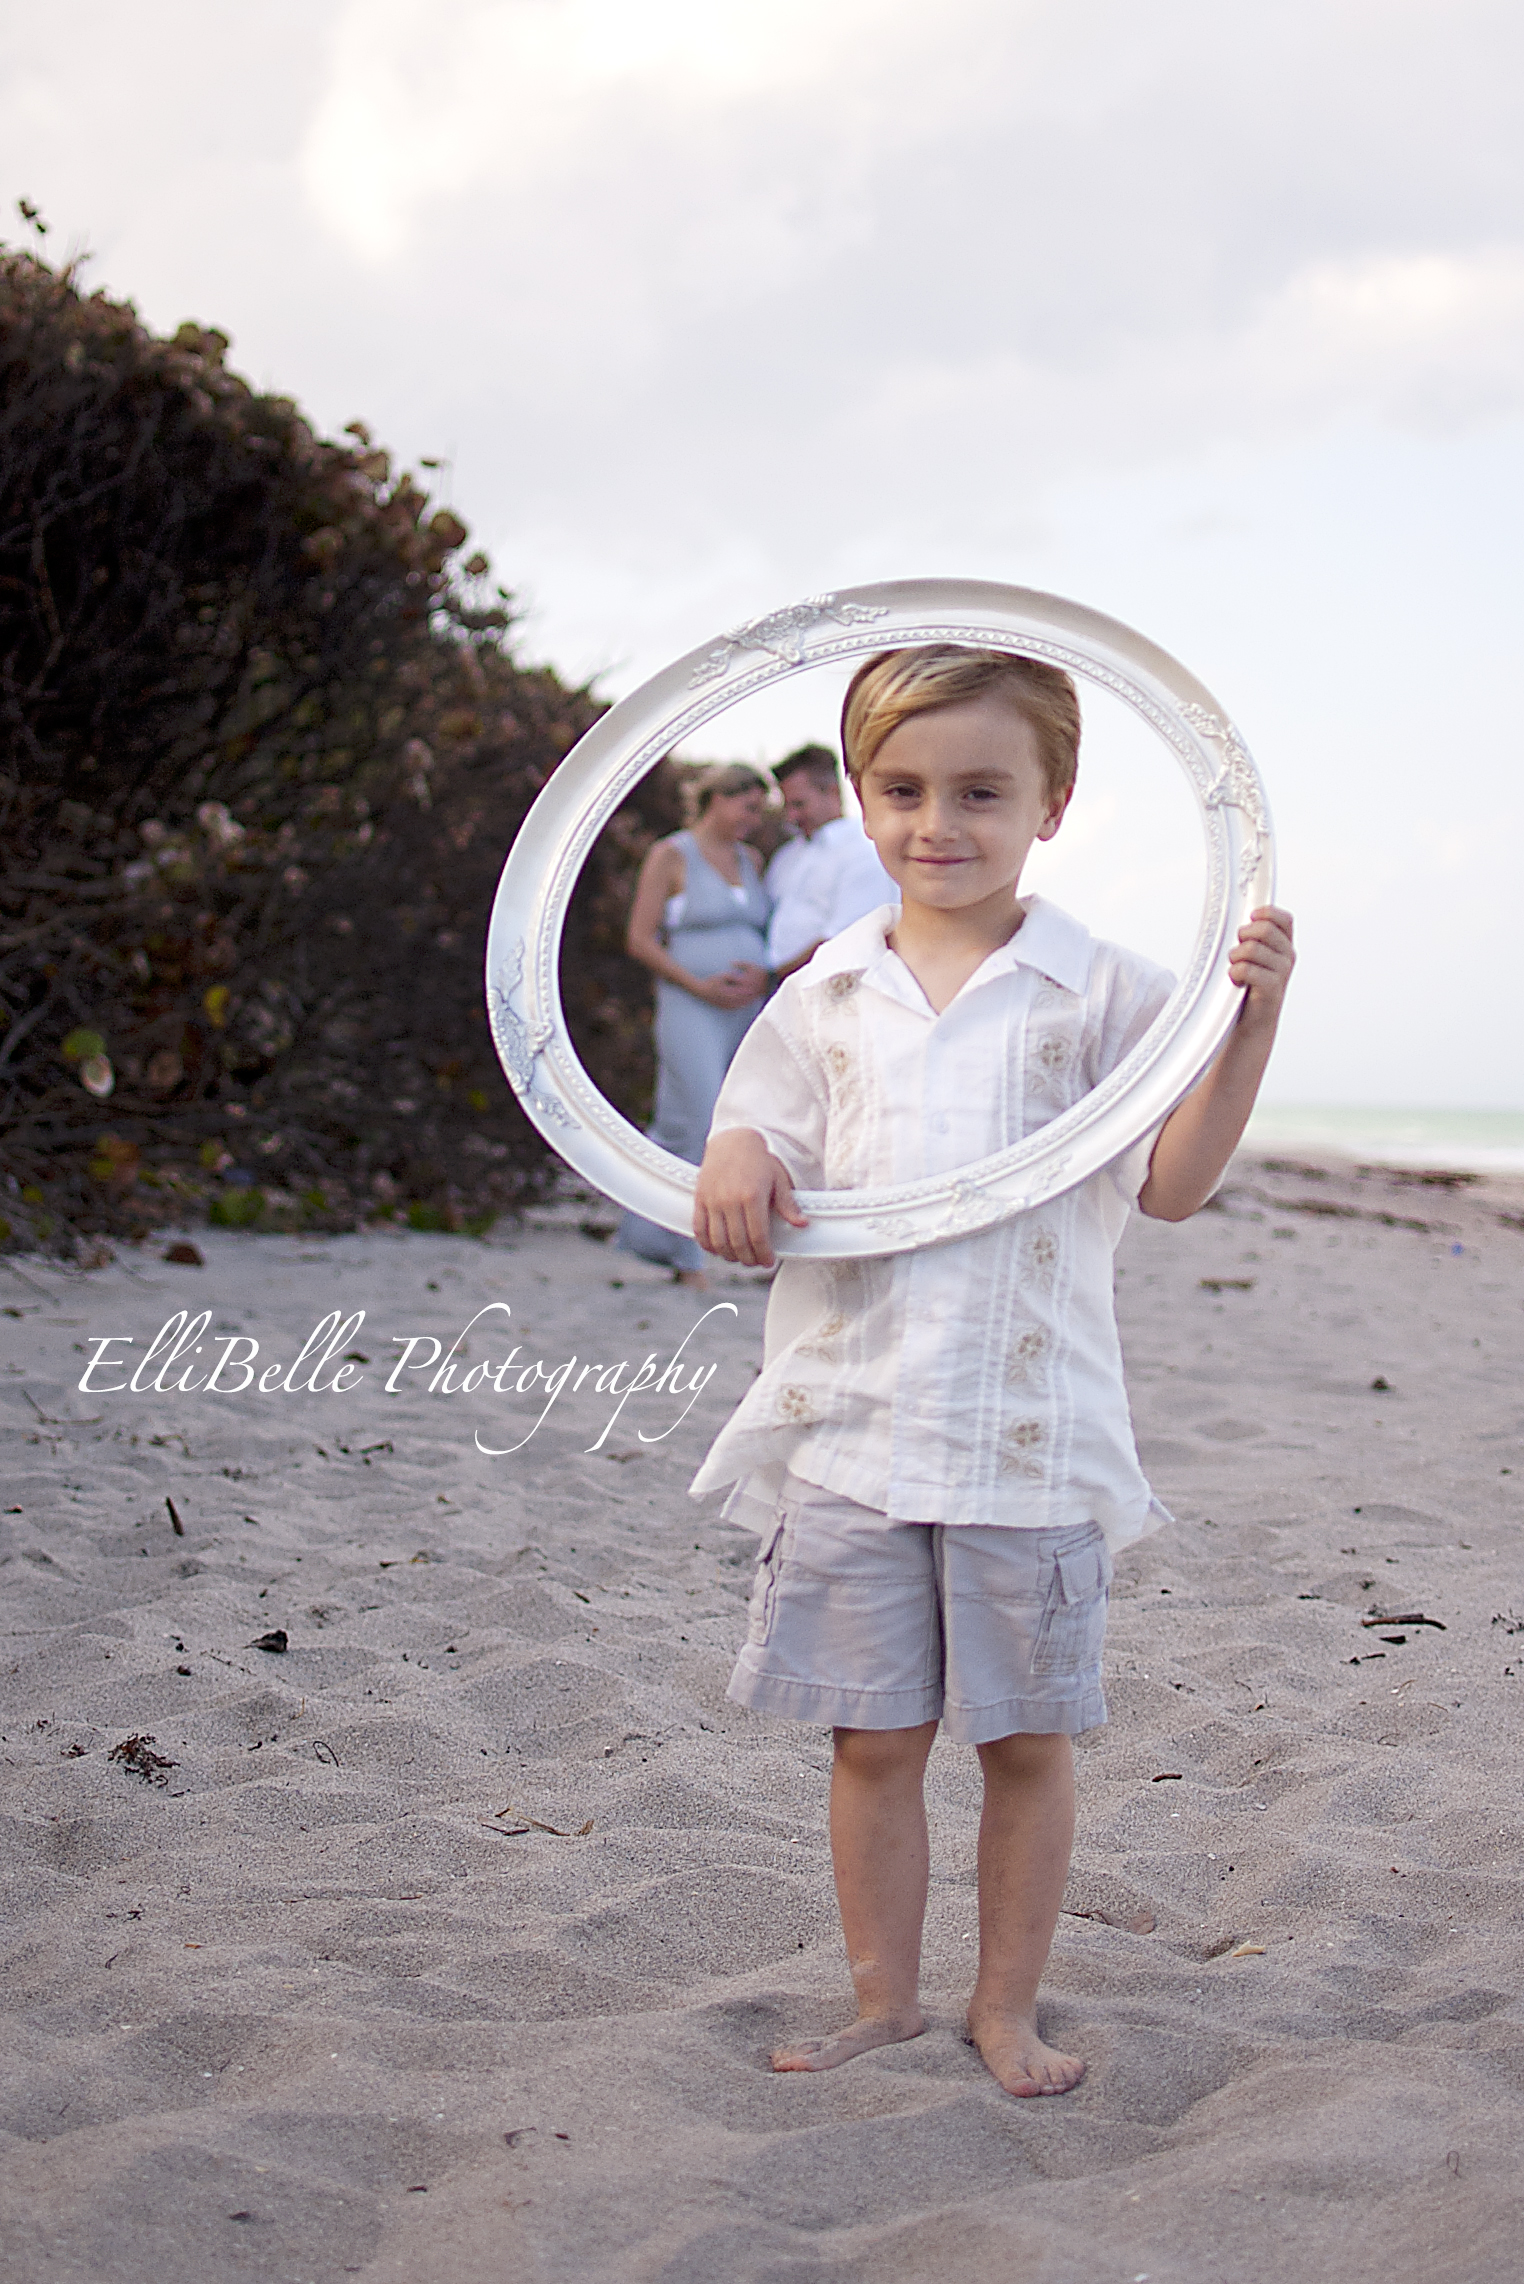 Elli-Belle Photography - Palm Beach County Florida Family Photographer